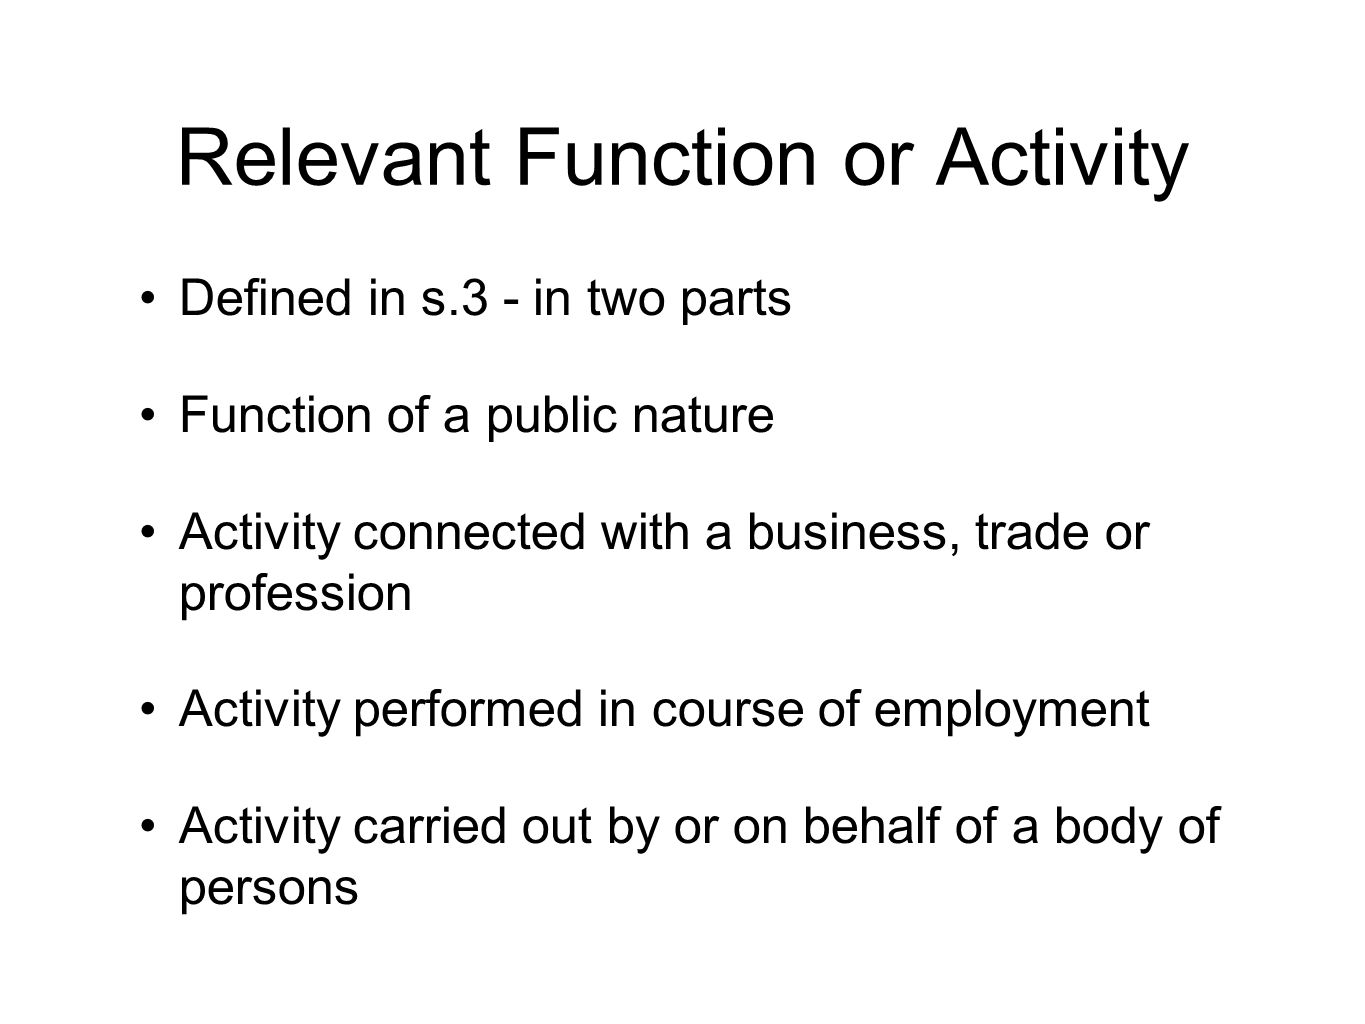 Relevant Function or Activity Defined in s.3 - in two parts Function of a public nature Activity connected with a business, trade or profession Activity performed in course of employment Activity carried out by or on behalf of a body of persons